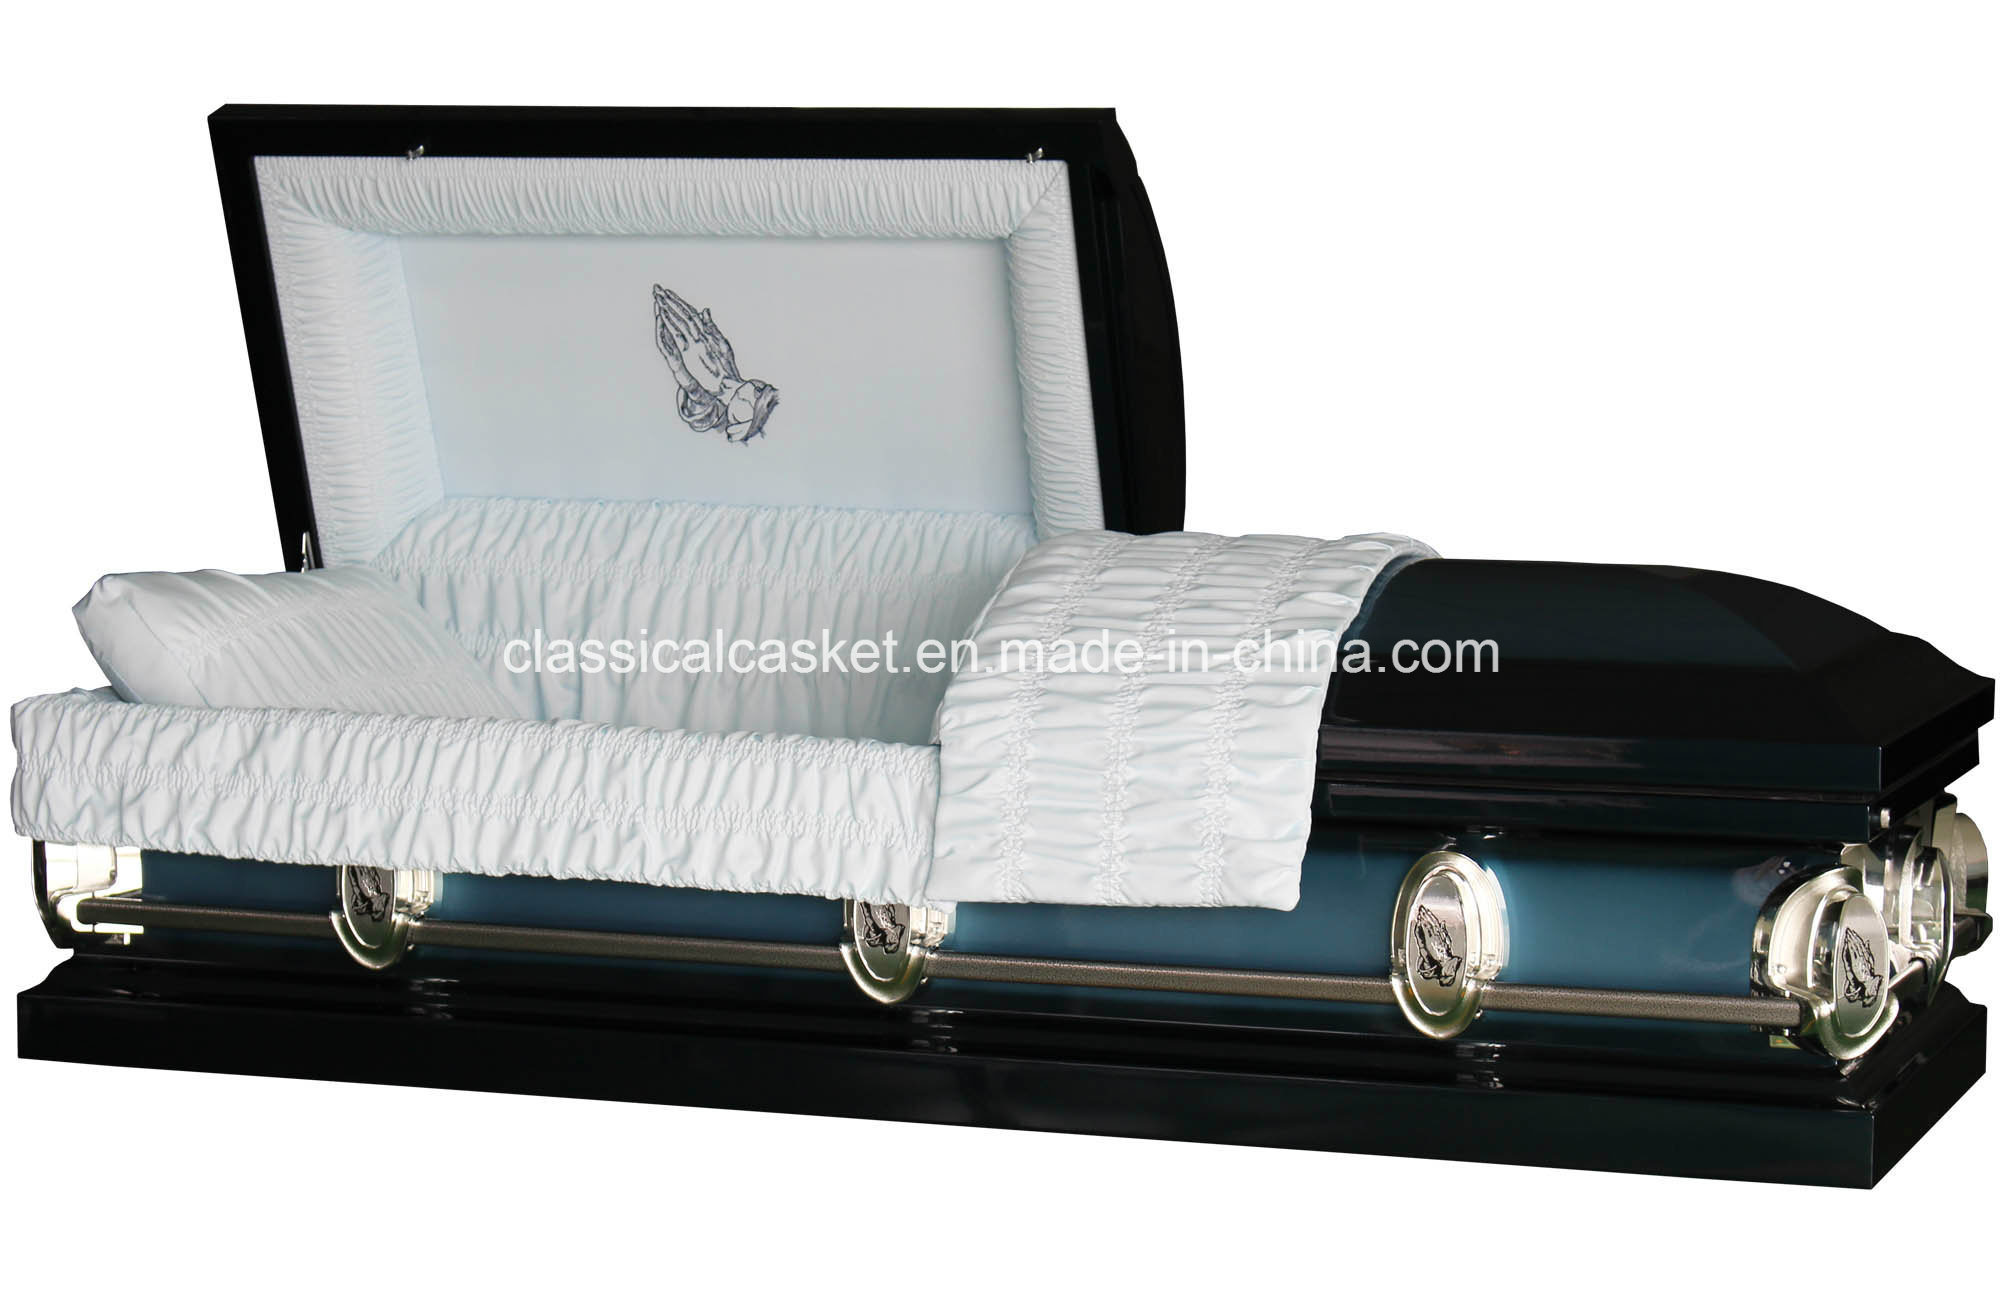 The Prayer 20ga Steel Casket